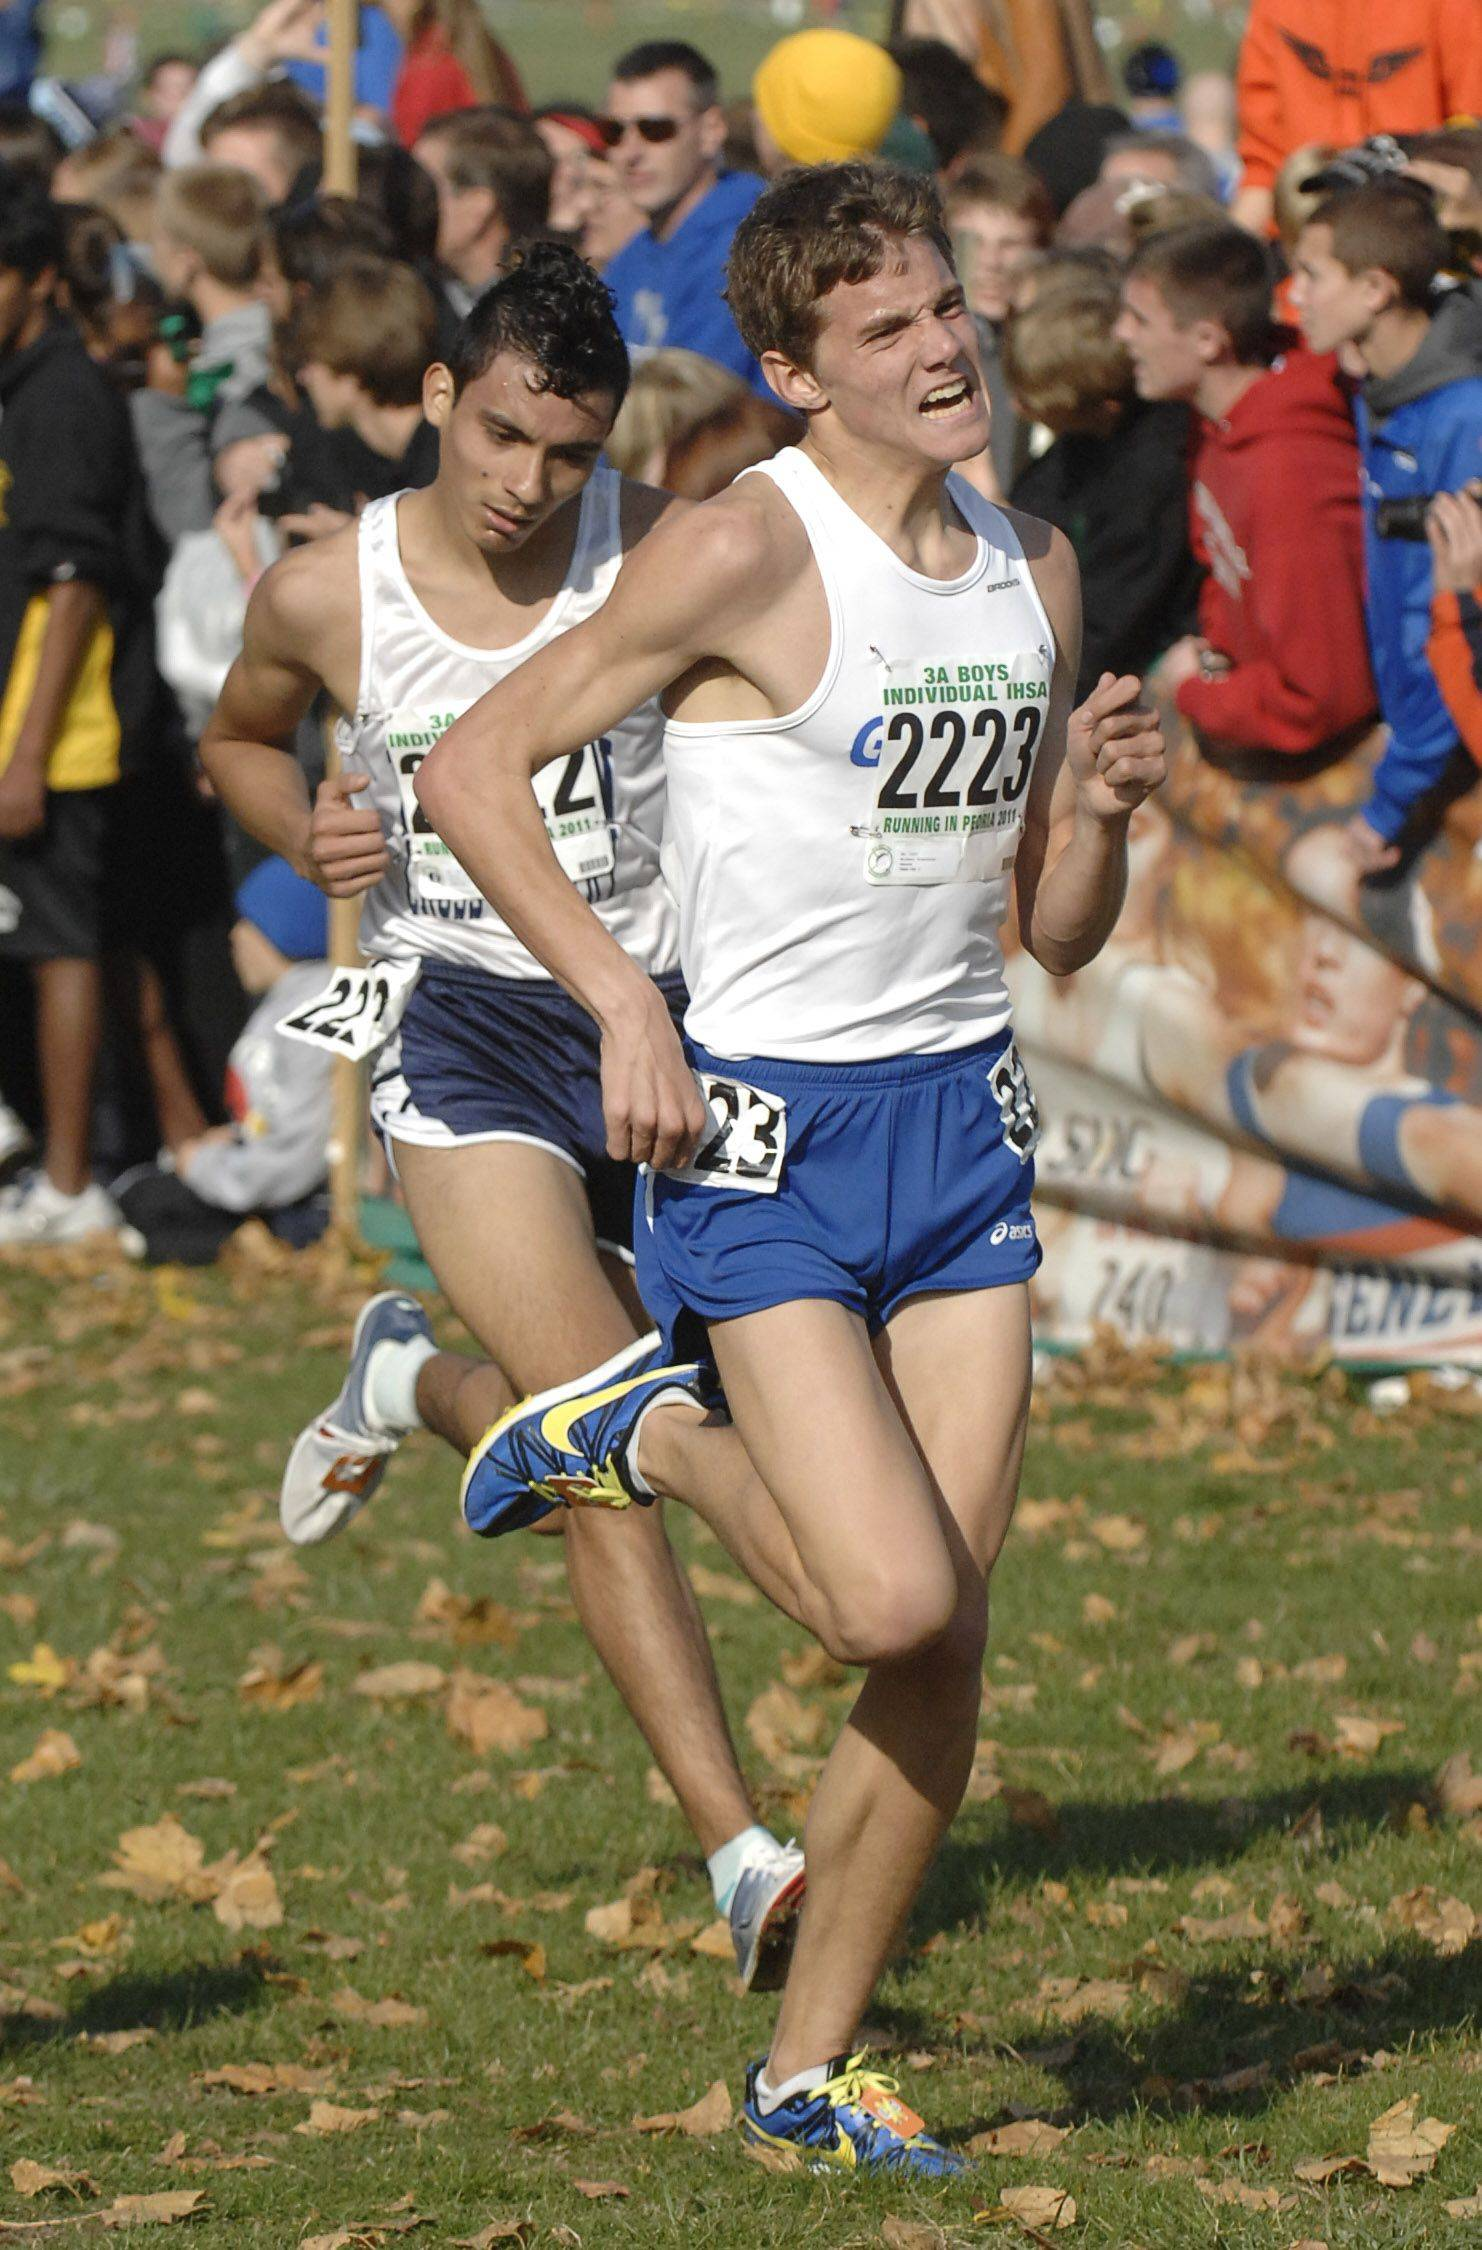 Geneva's Michael Bianchina finishes in 42nd place in the 3A state cross country final.